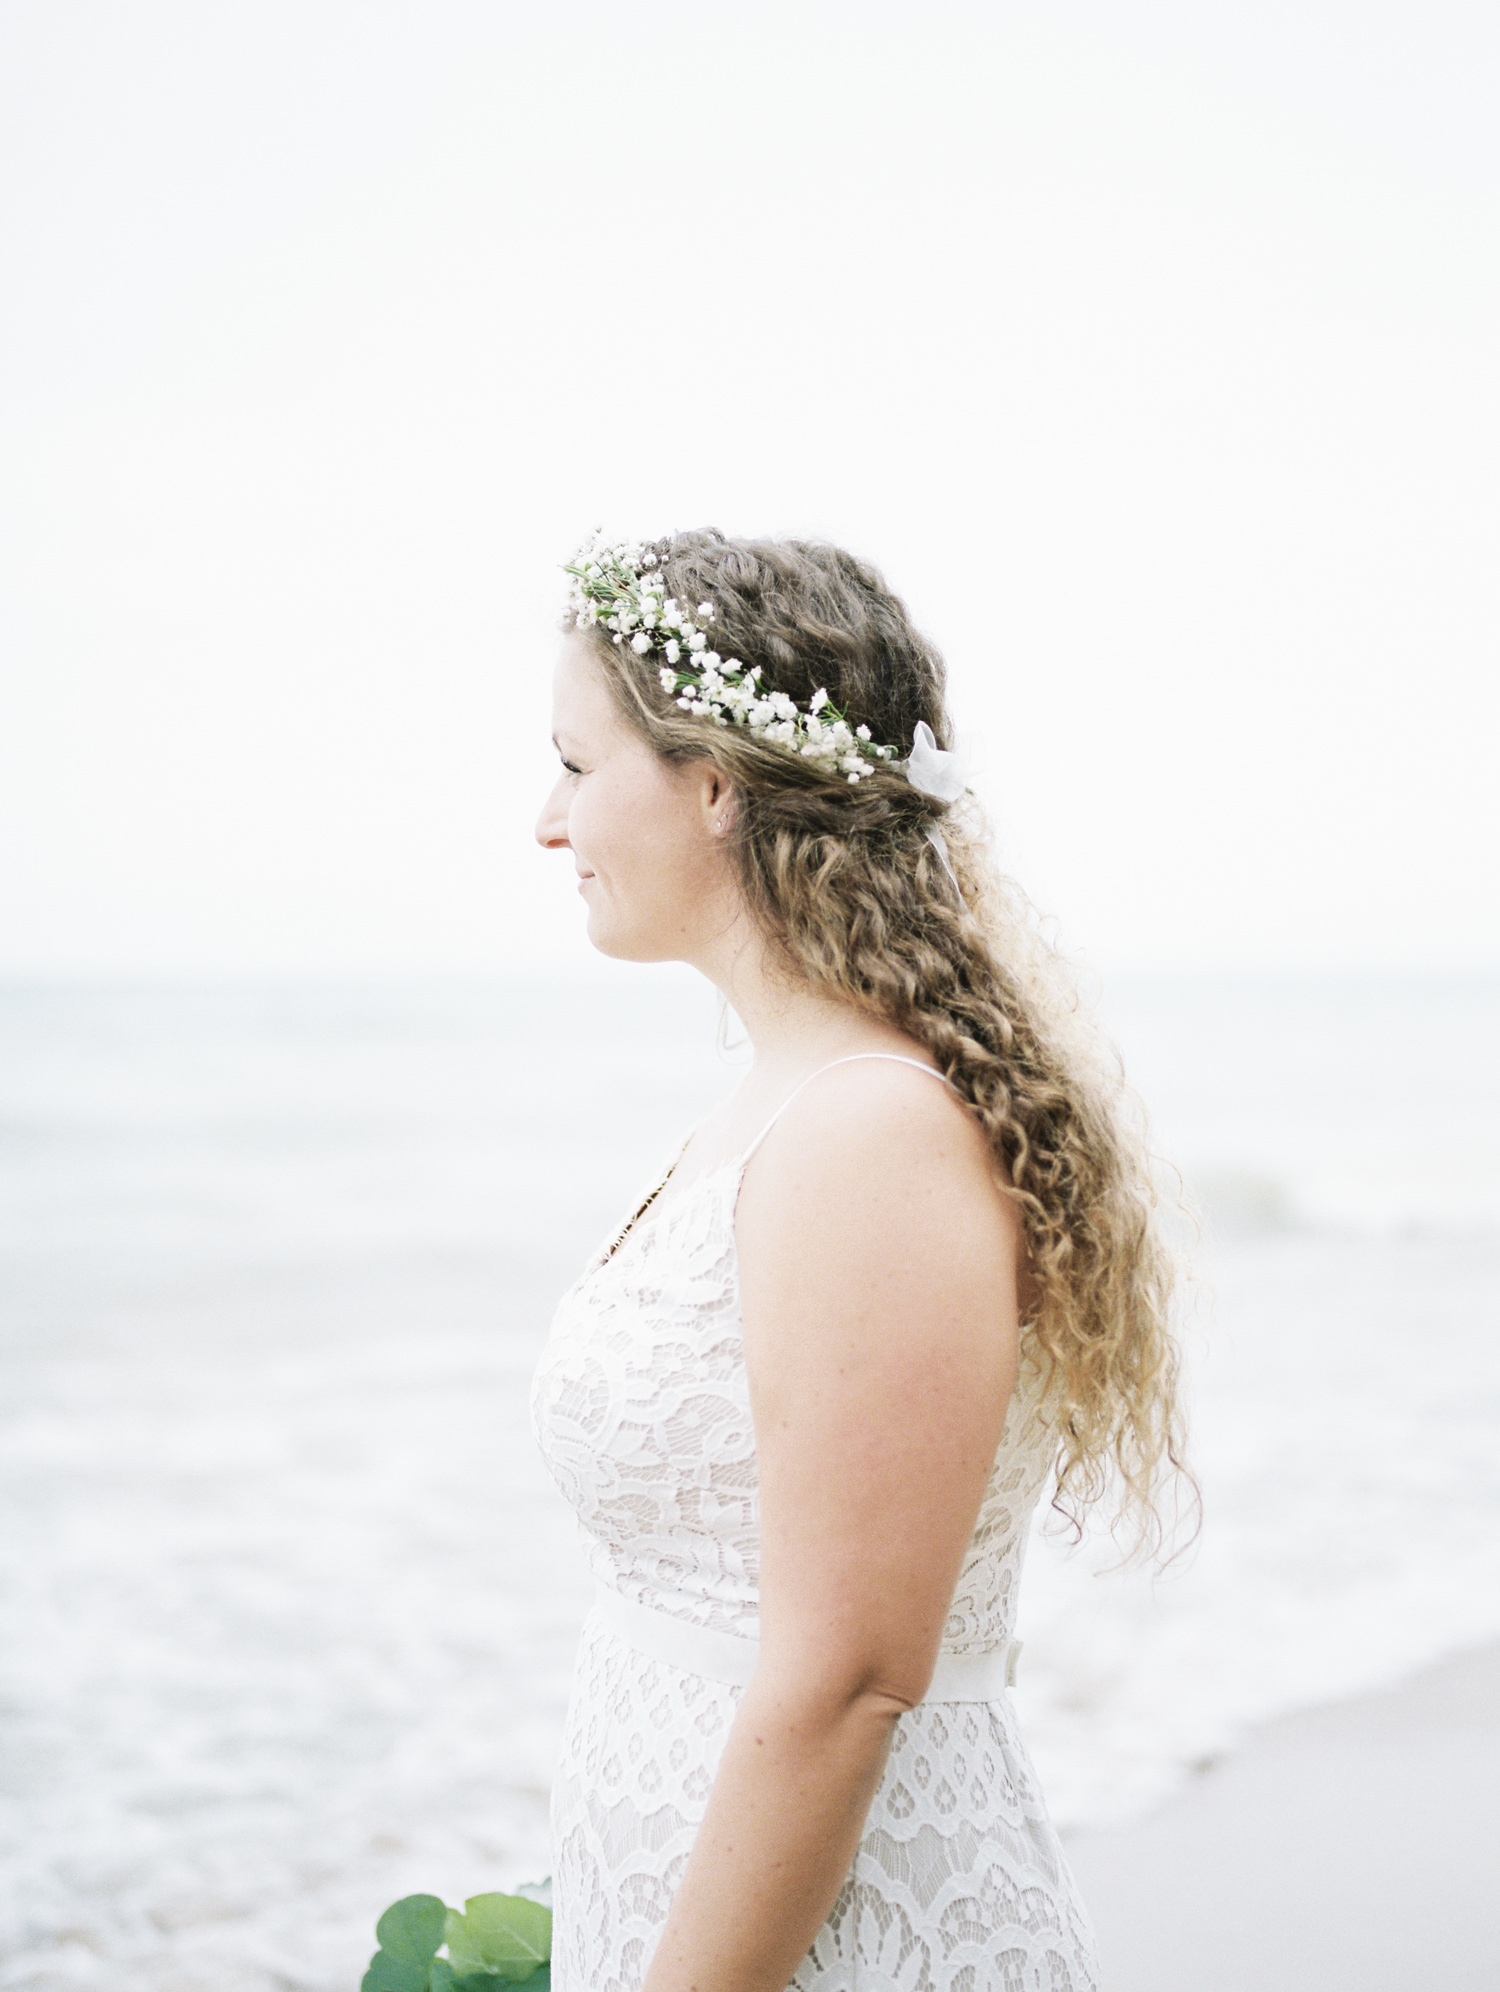 A curly haired bride with relaxed boho style and a delicate flower crown looks out at Lake Michigan from a west Michigan beach after her small wedding